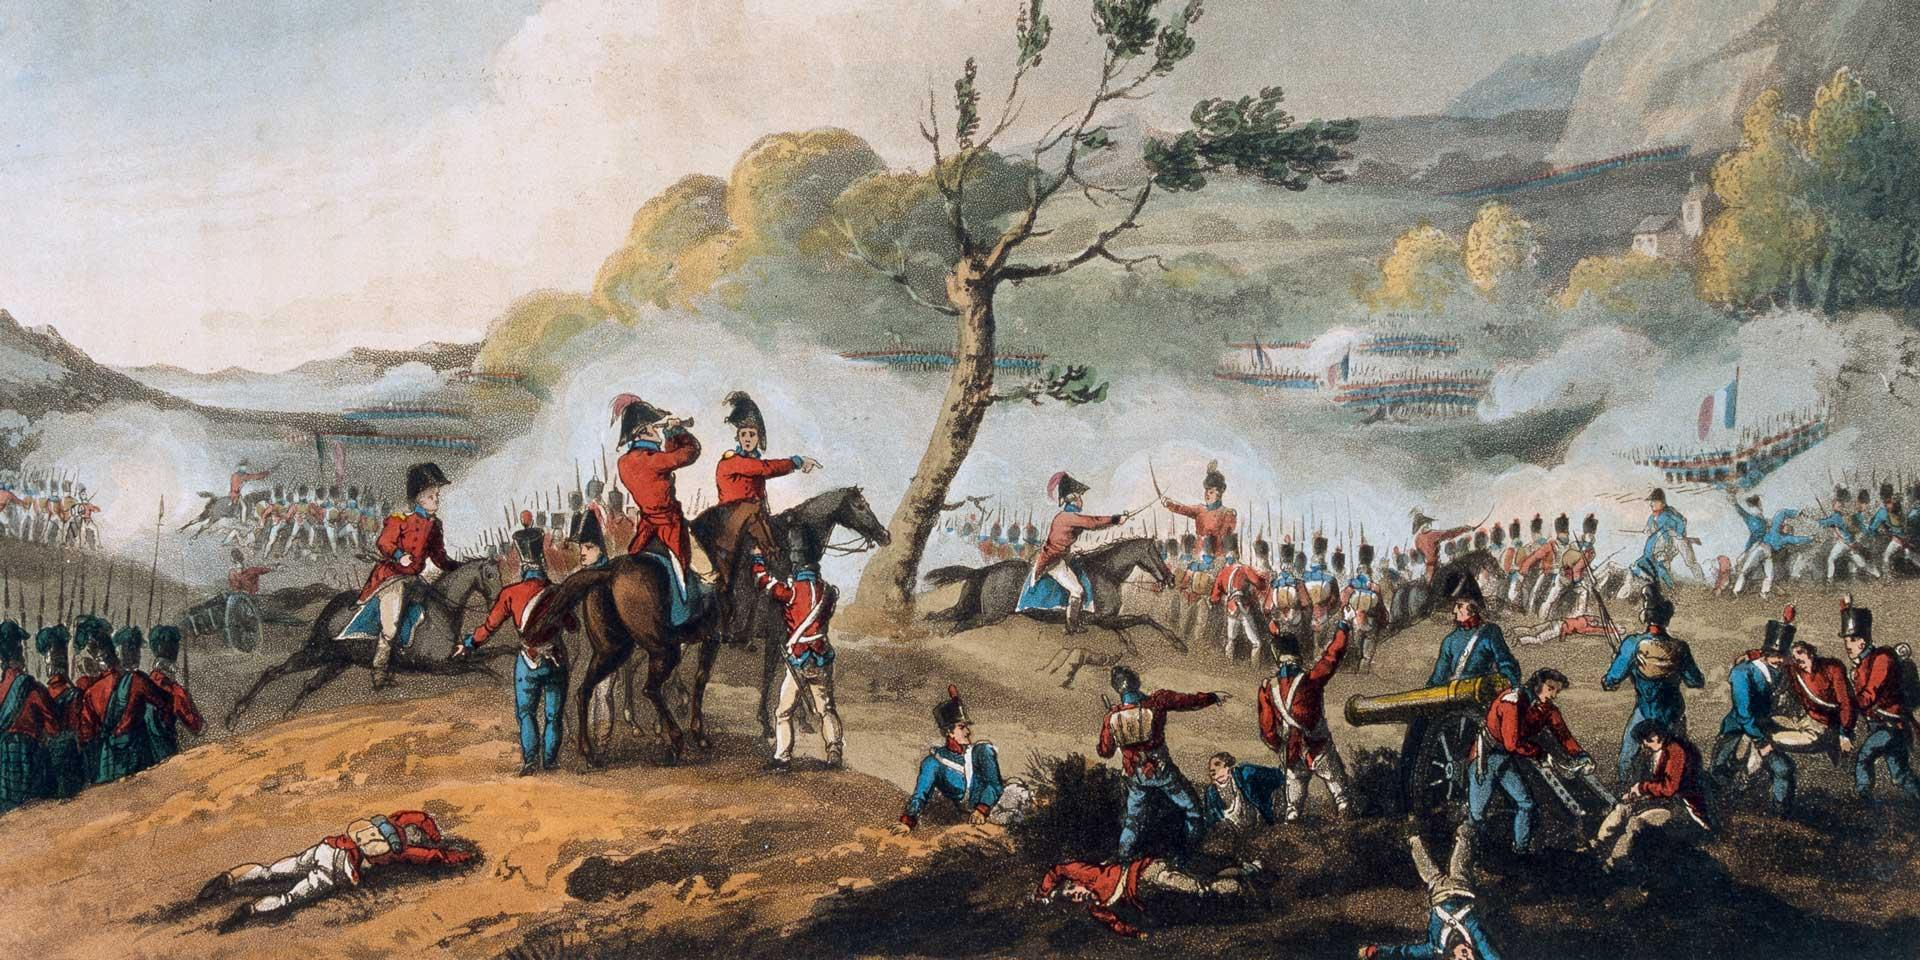 The Battle of Maida, 4 July 1806